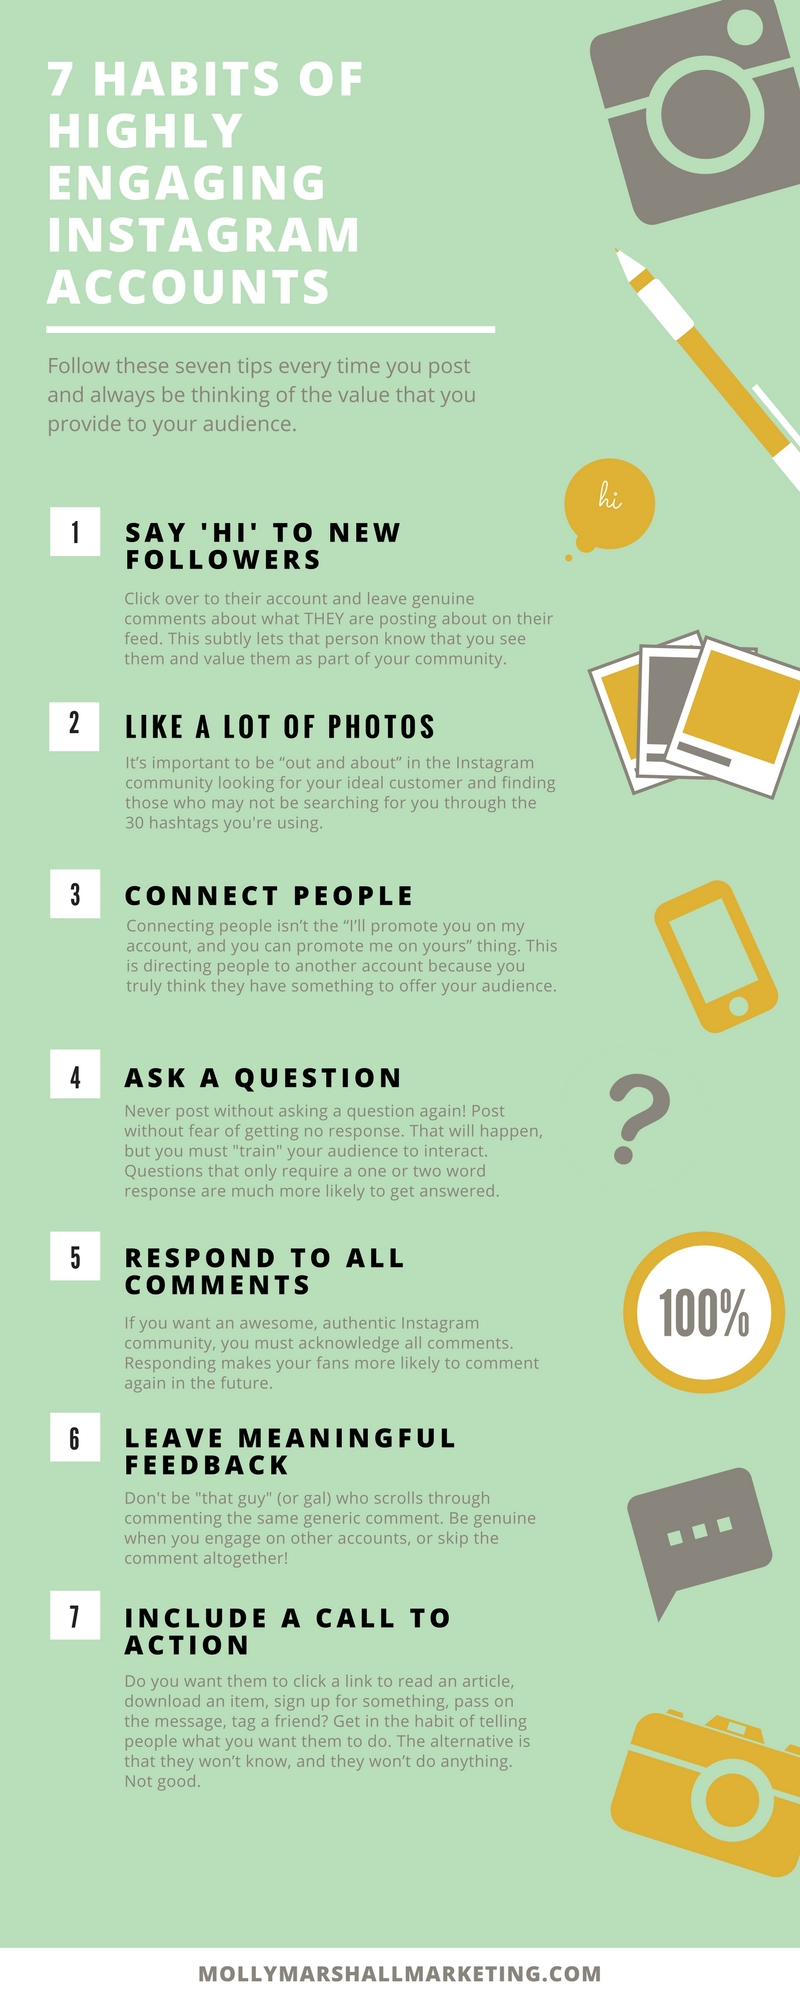 There are 7 habits you should master if you really want to grow your Instagram engagement. Click to read or pin for later!